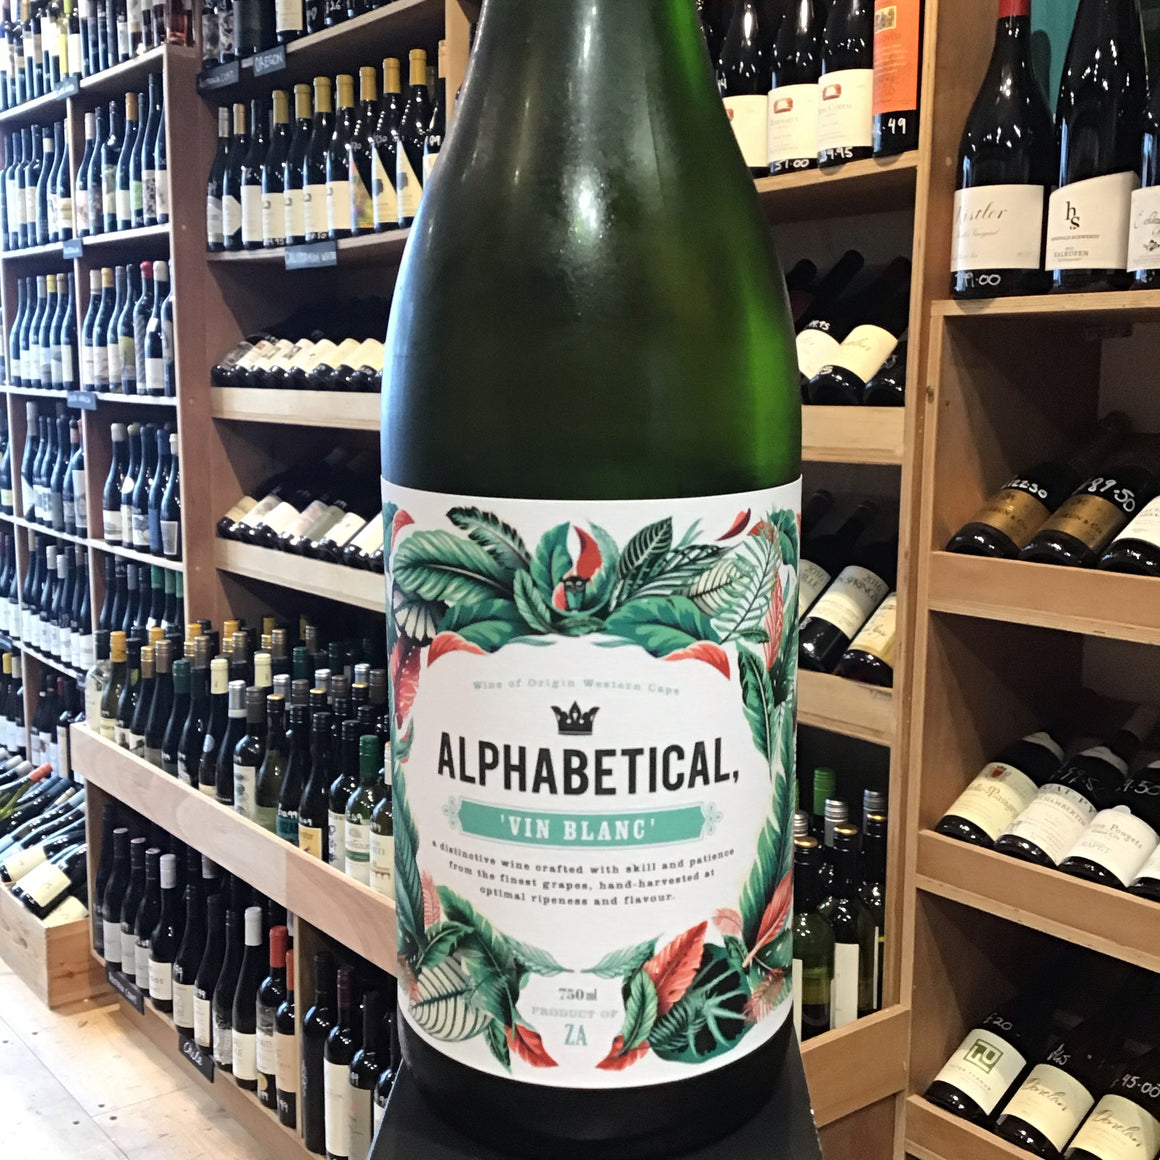 Alphabetical White Vin Blanc 2018 - Butlers Wine Cellar Brighton